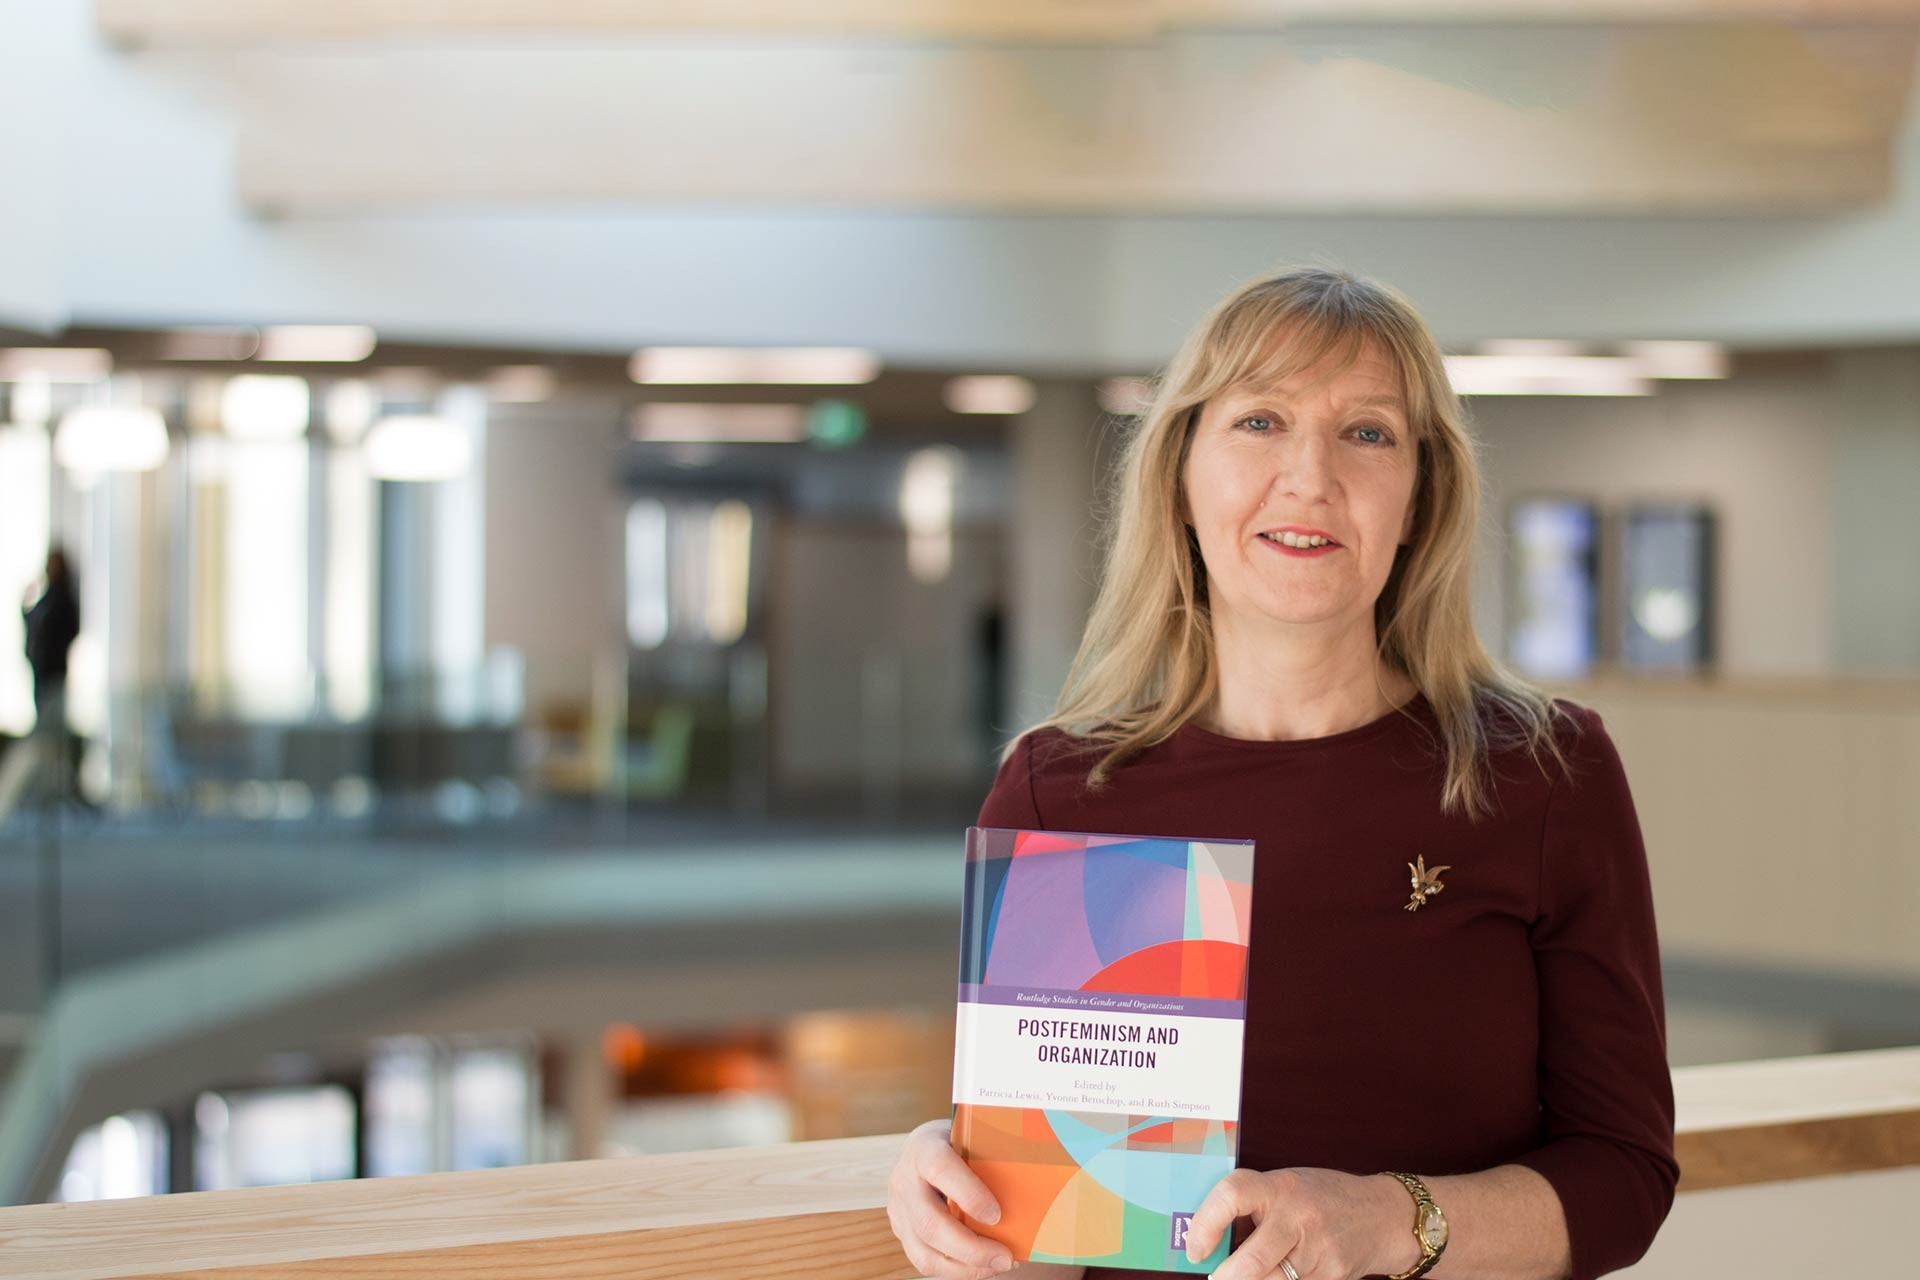 Dr Patricia Lewis in the Sibson building holding a book she published